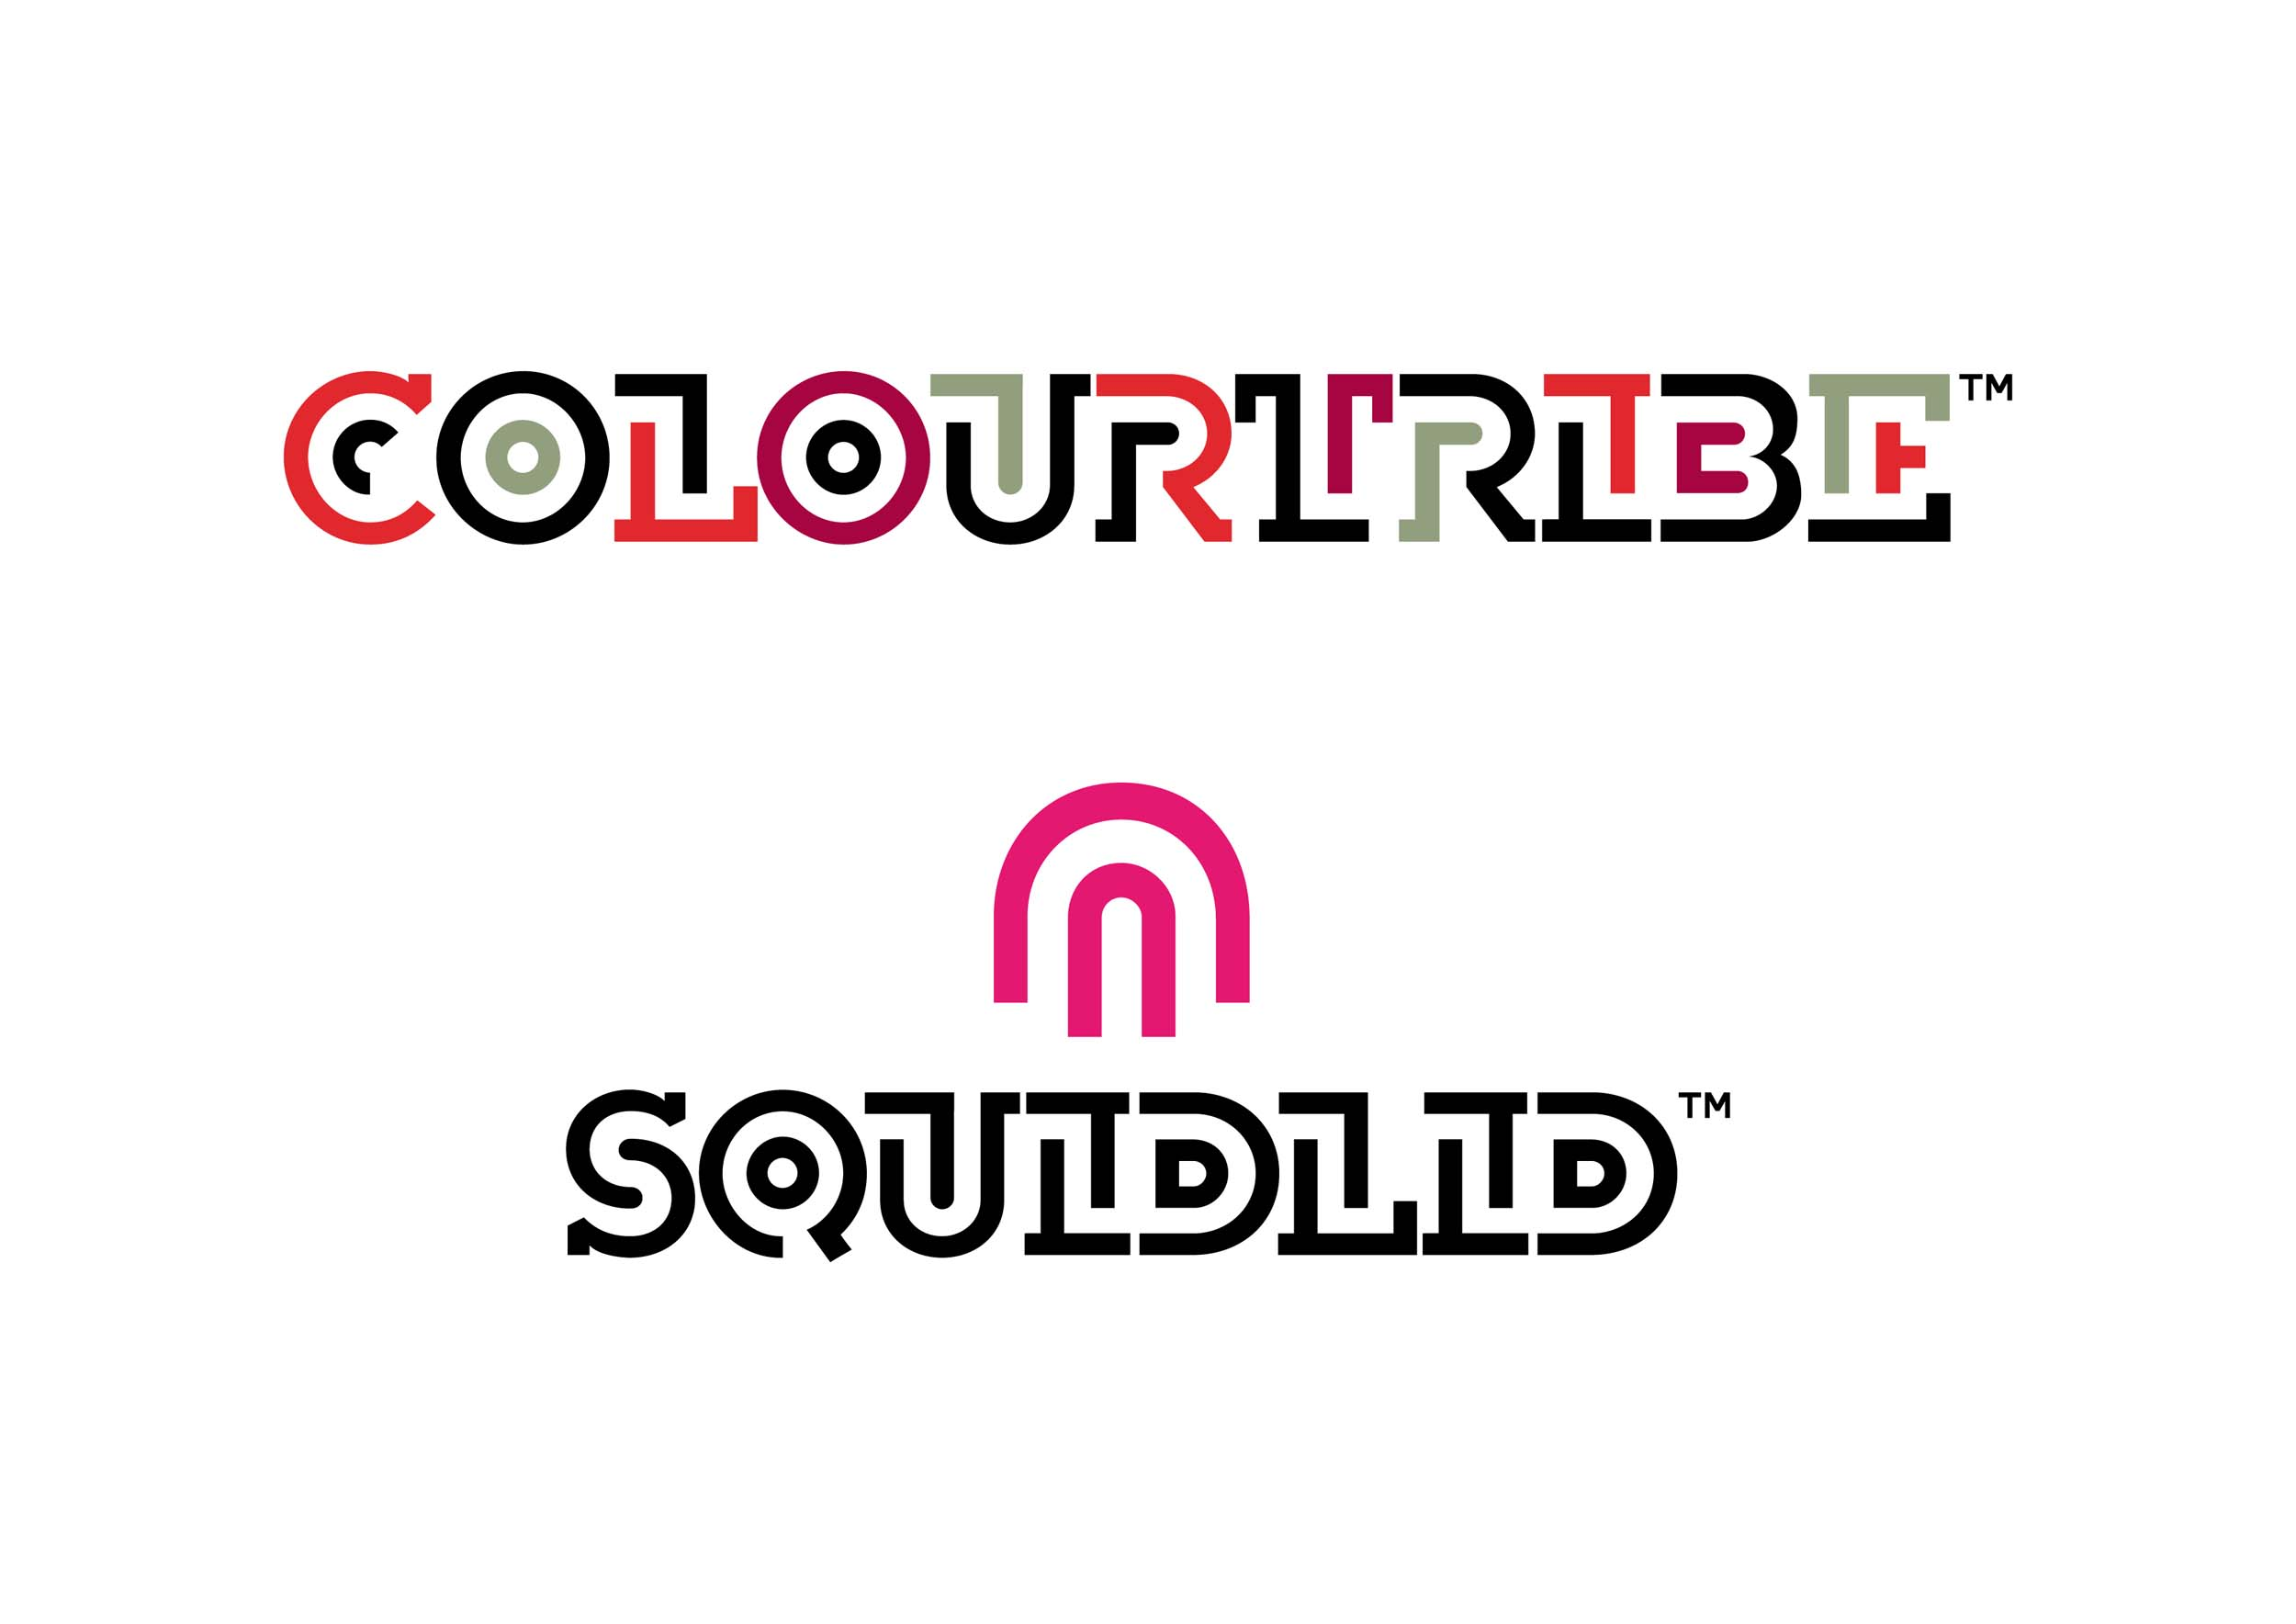 Logos Colourtribe Squidlid.jpg